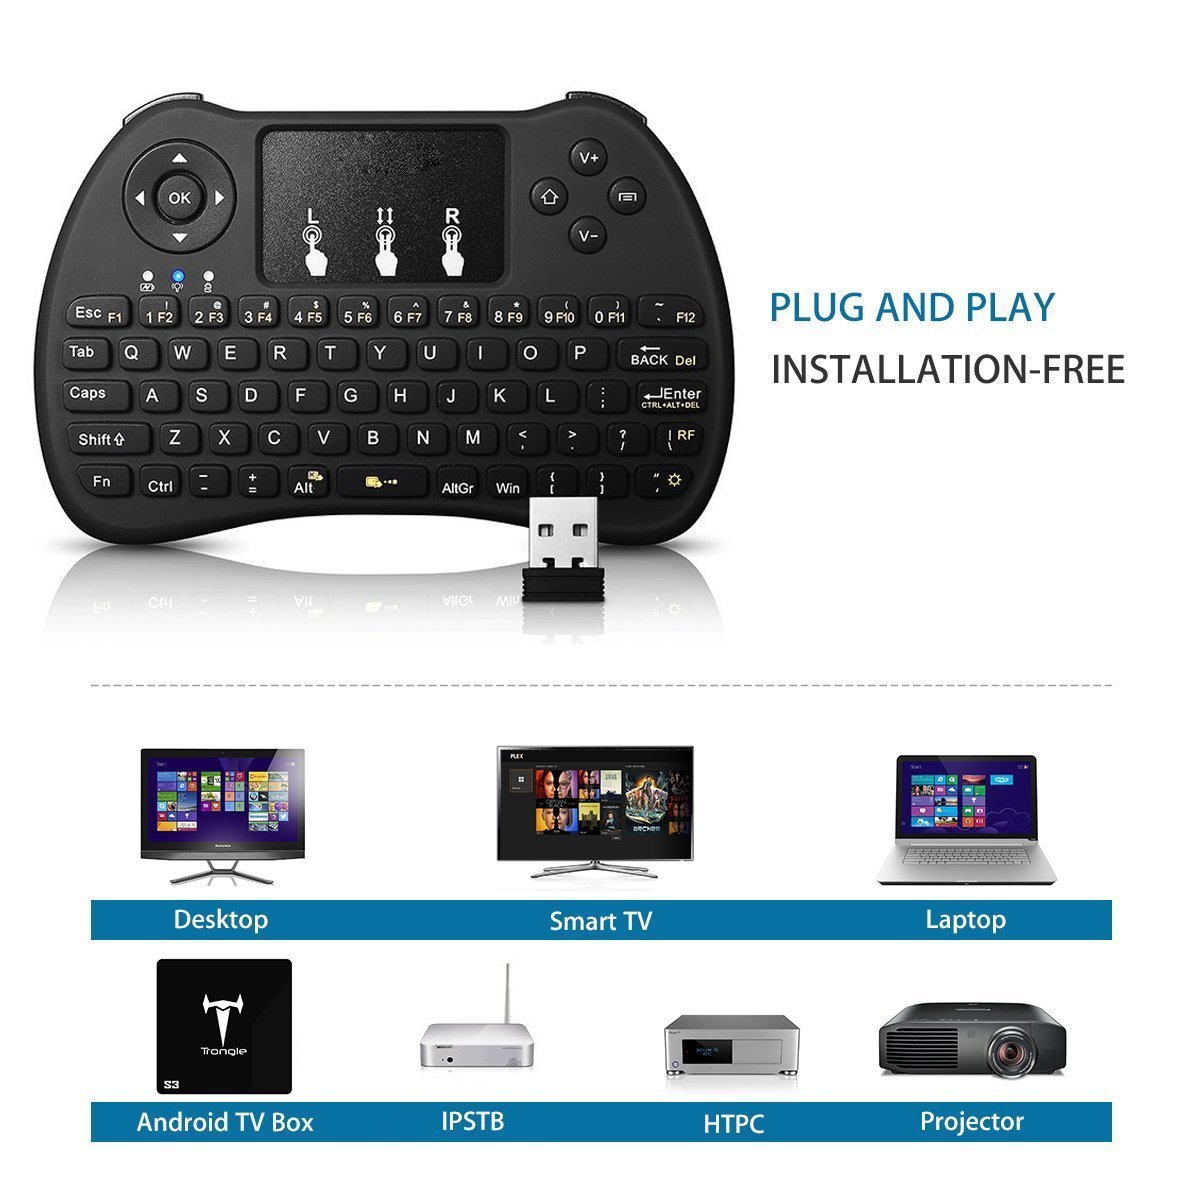 CJW 2.4GHz Multi-Media Portable Wireless Handheld Mini Keyboard with Touchpad Mouse for Xbox 360, PC, PAD, PS3, Google Android TV Box, HTPC